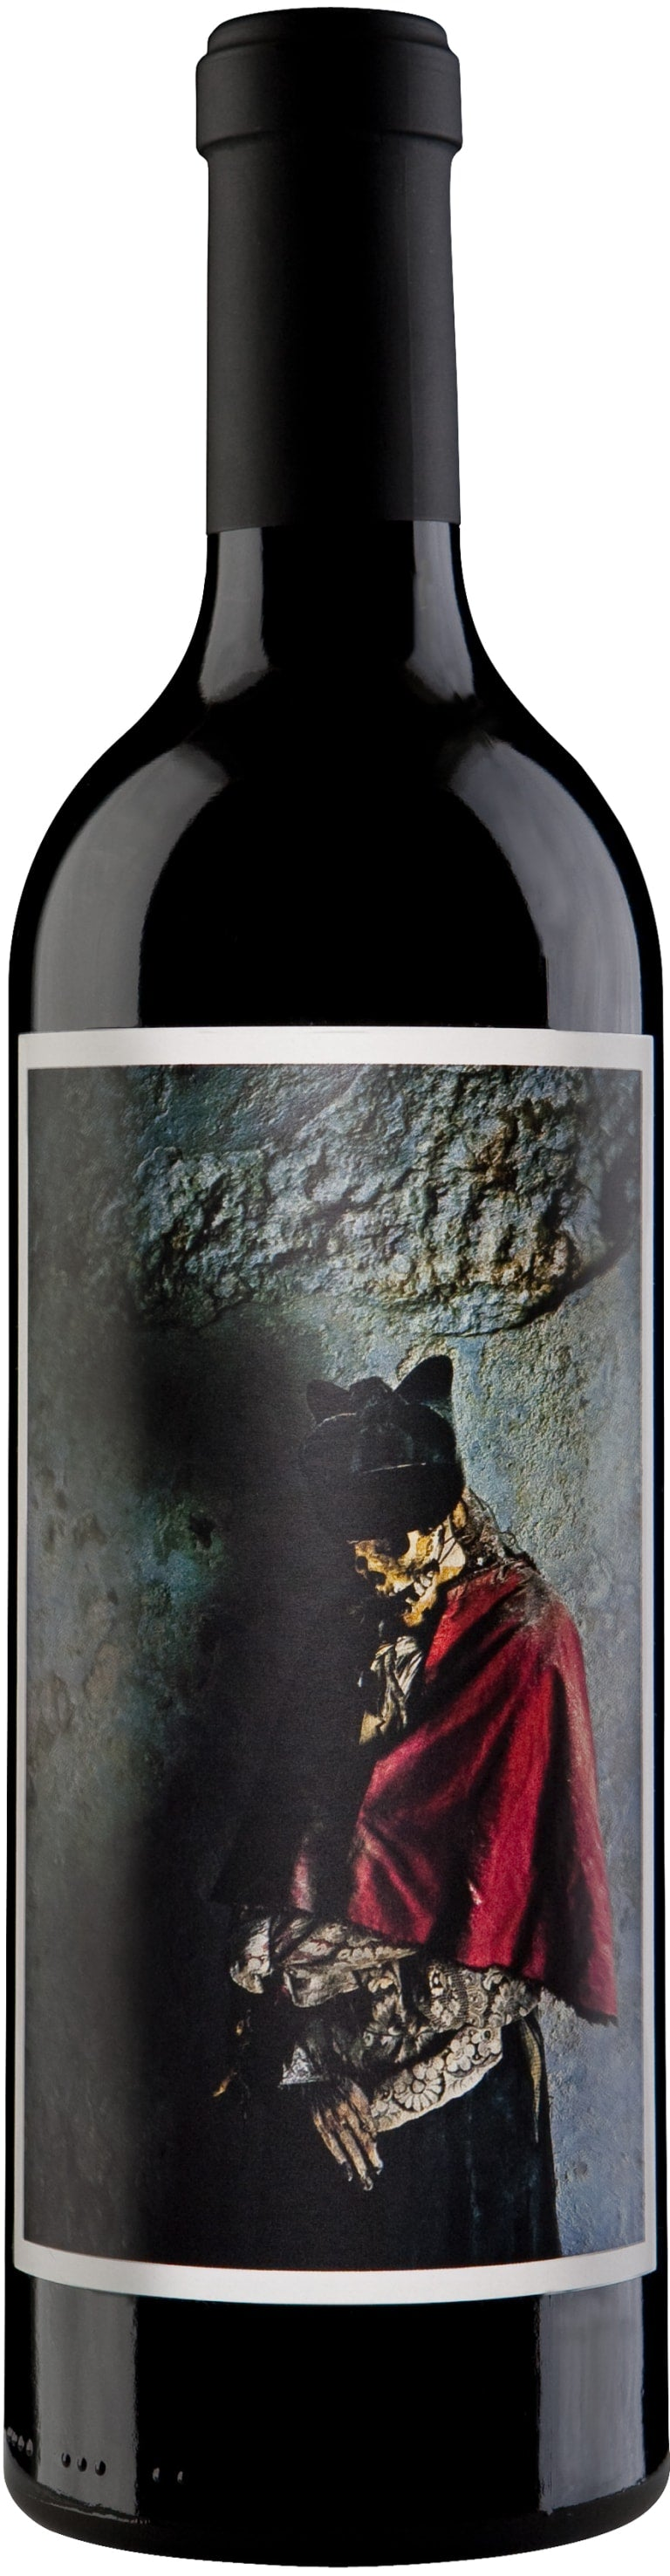 2018 Orin Swift Cellars Palermo Cabernet, Napa Valley